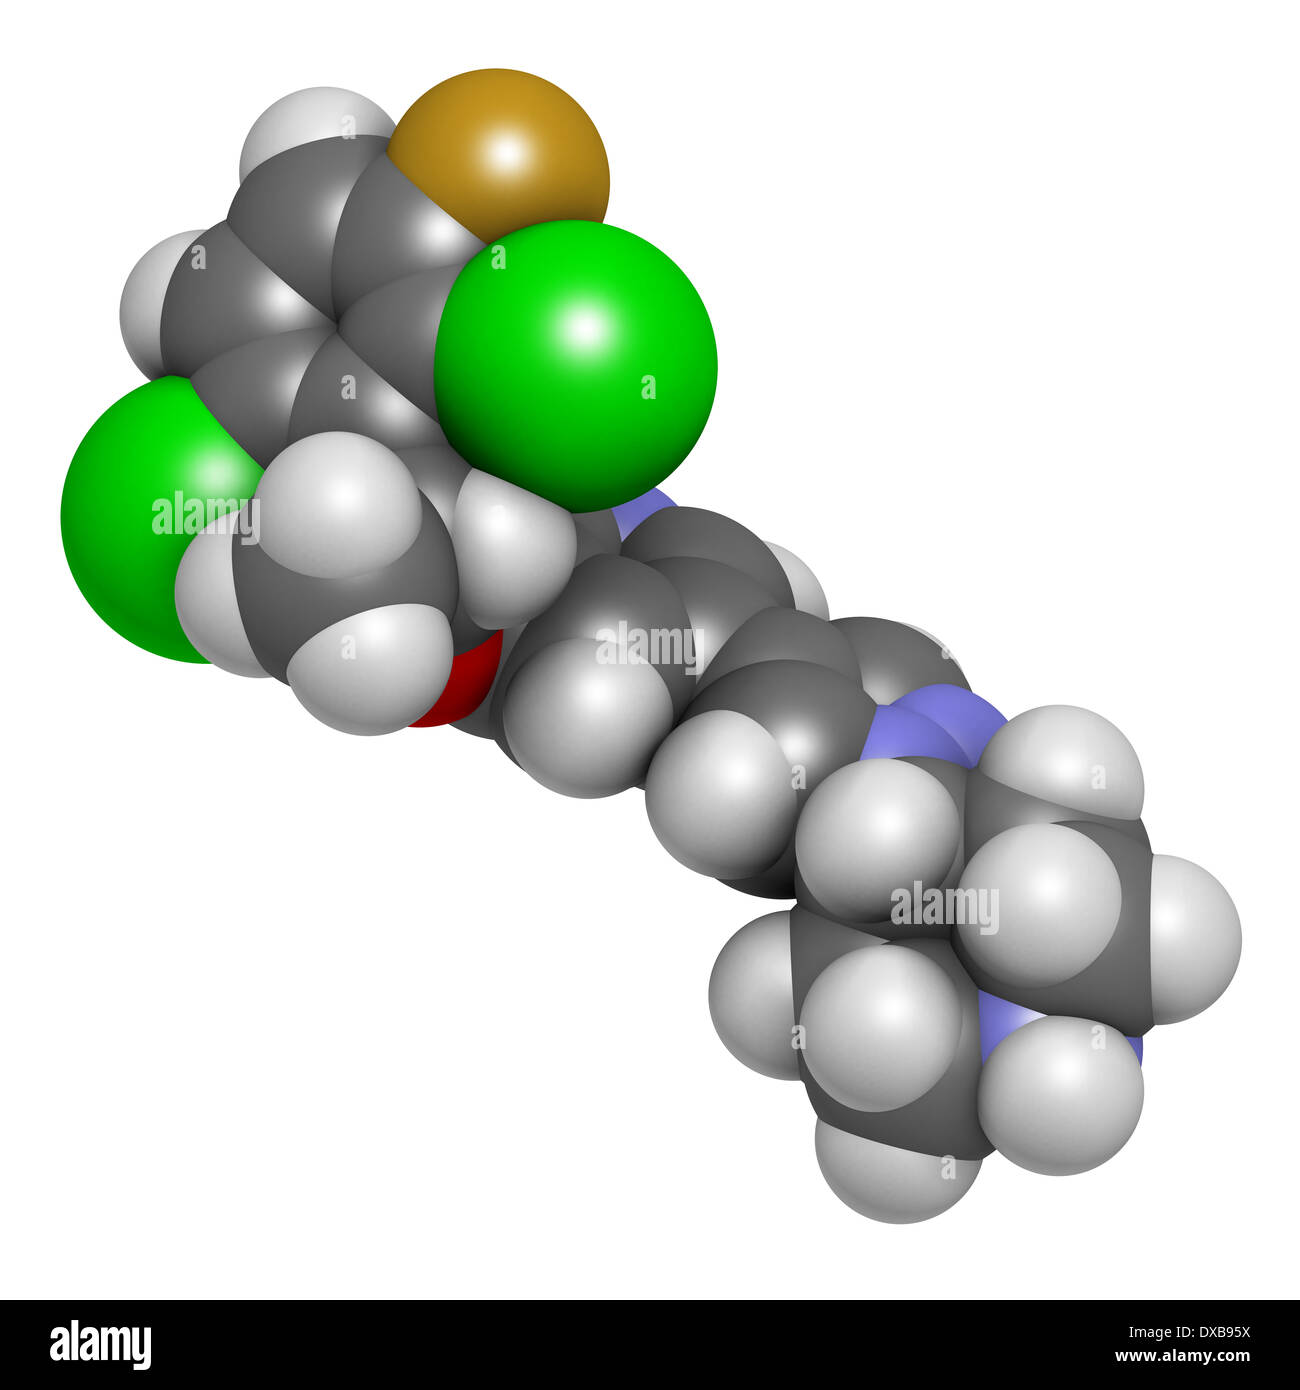 Crizotinib anti-cancer drug molecule. Inhibitor of ALK and ROS1 proteins. Stock Photo